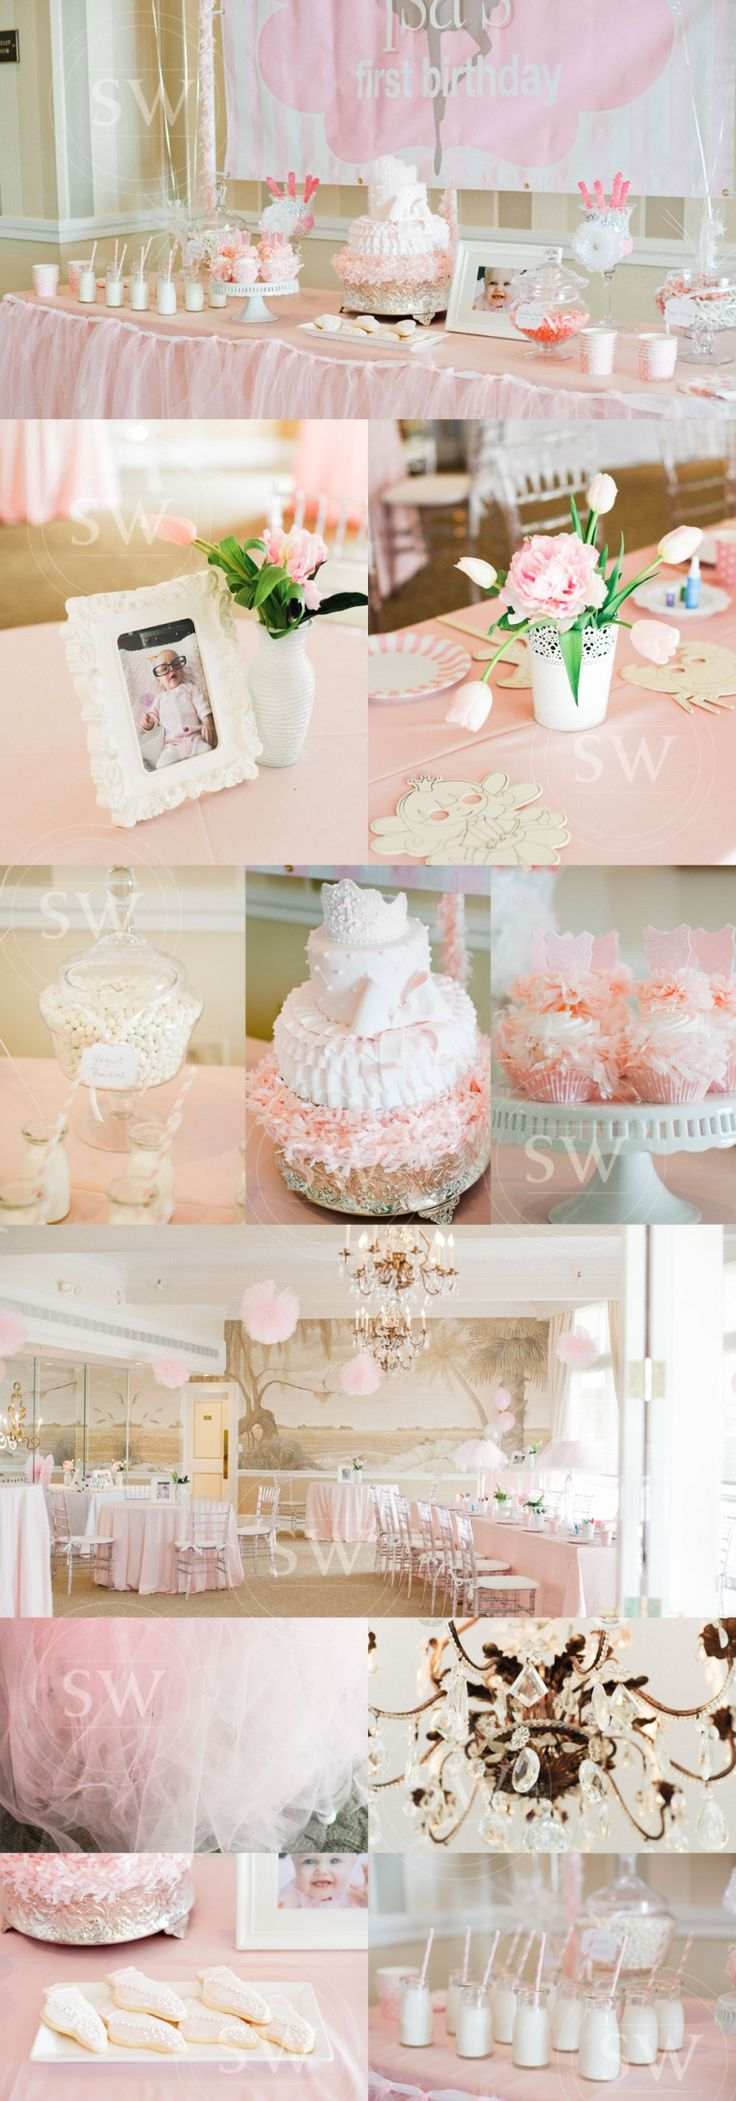 First Birthday Party Details | Stacey Woods Photography